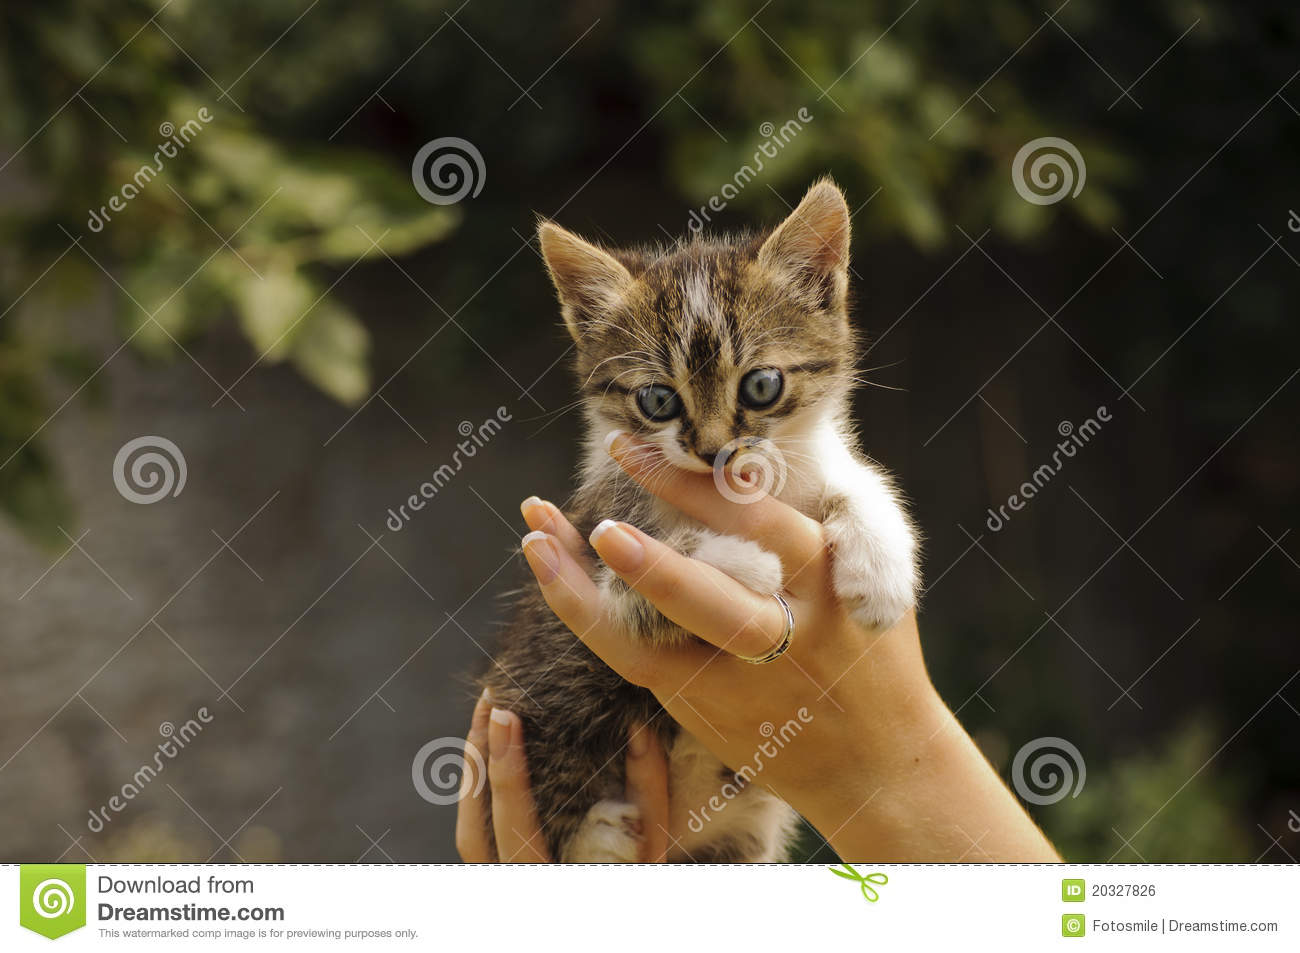 how to stop a kitten from biting fingers